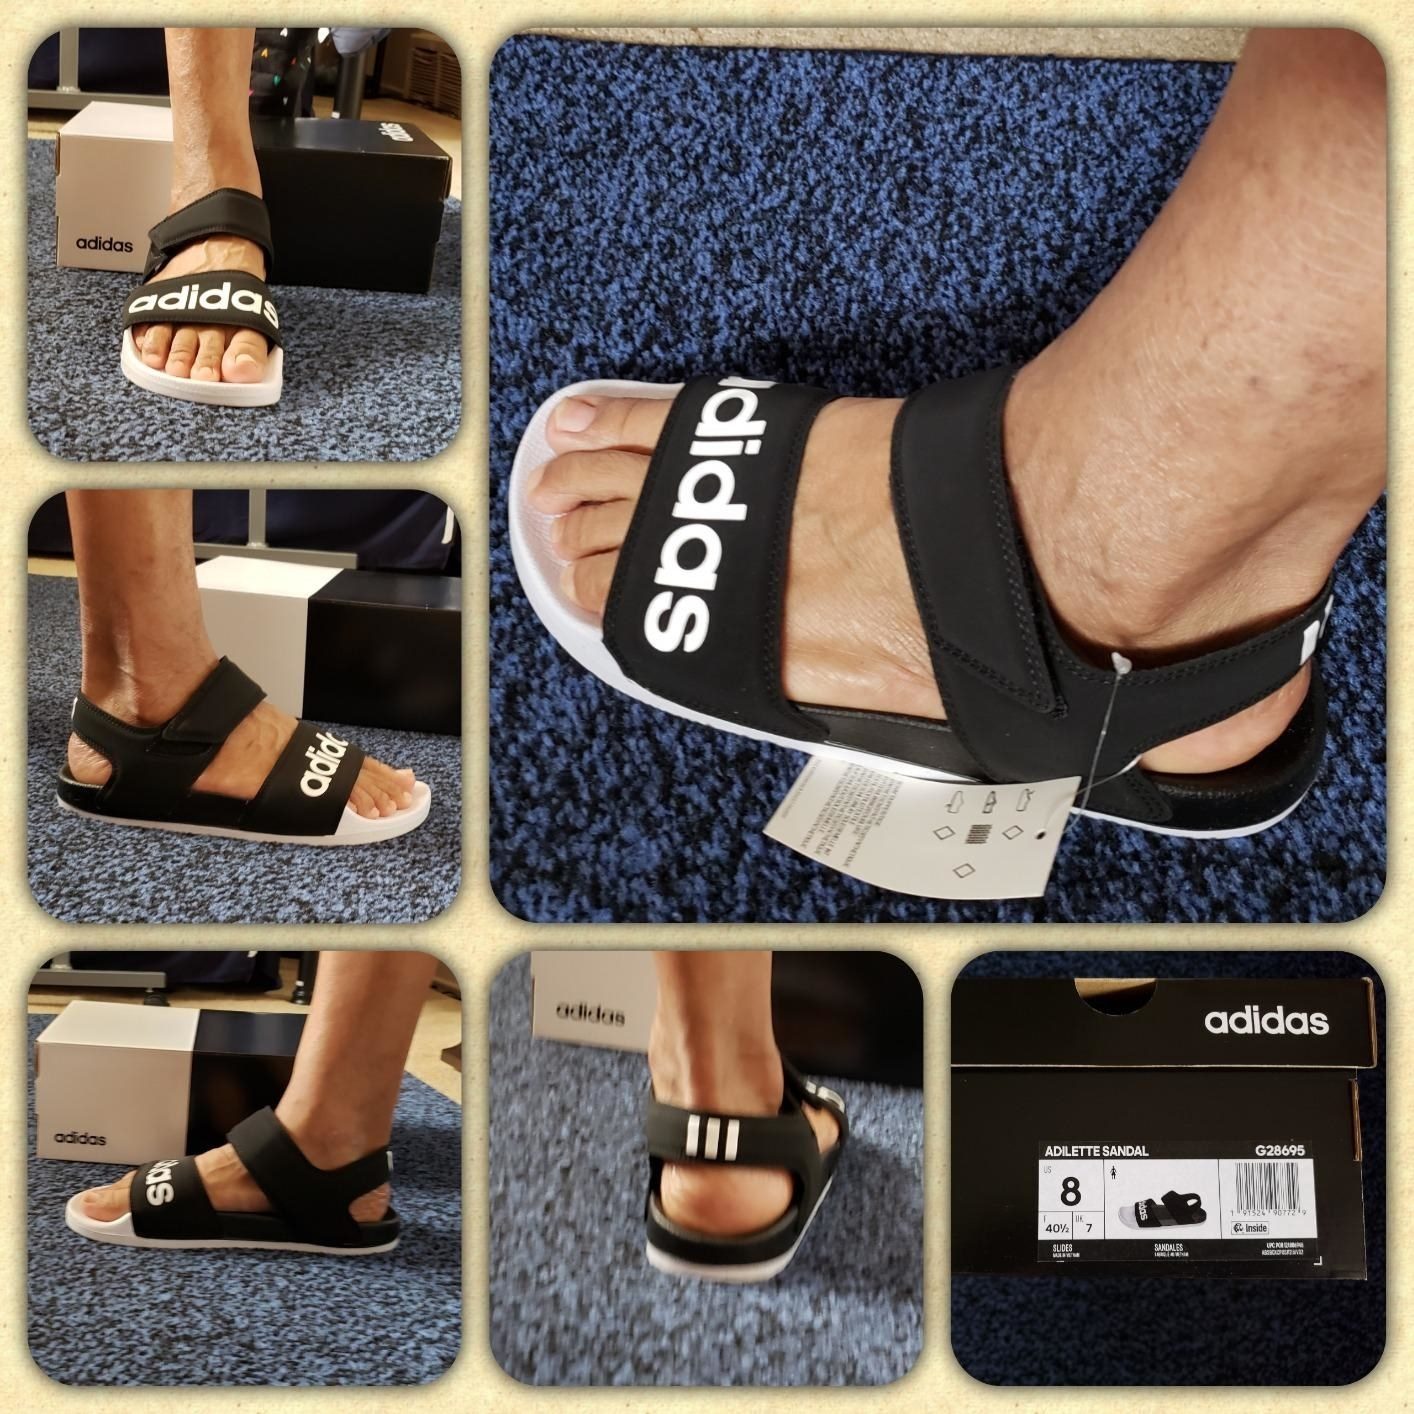 reviewer wearing the black and white logo sandals